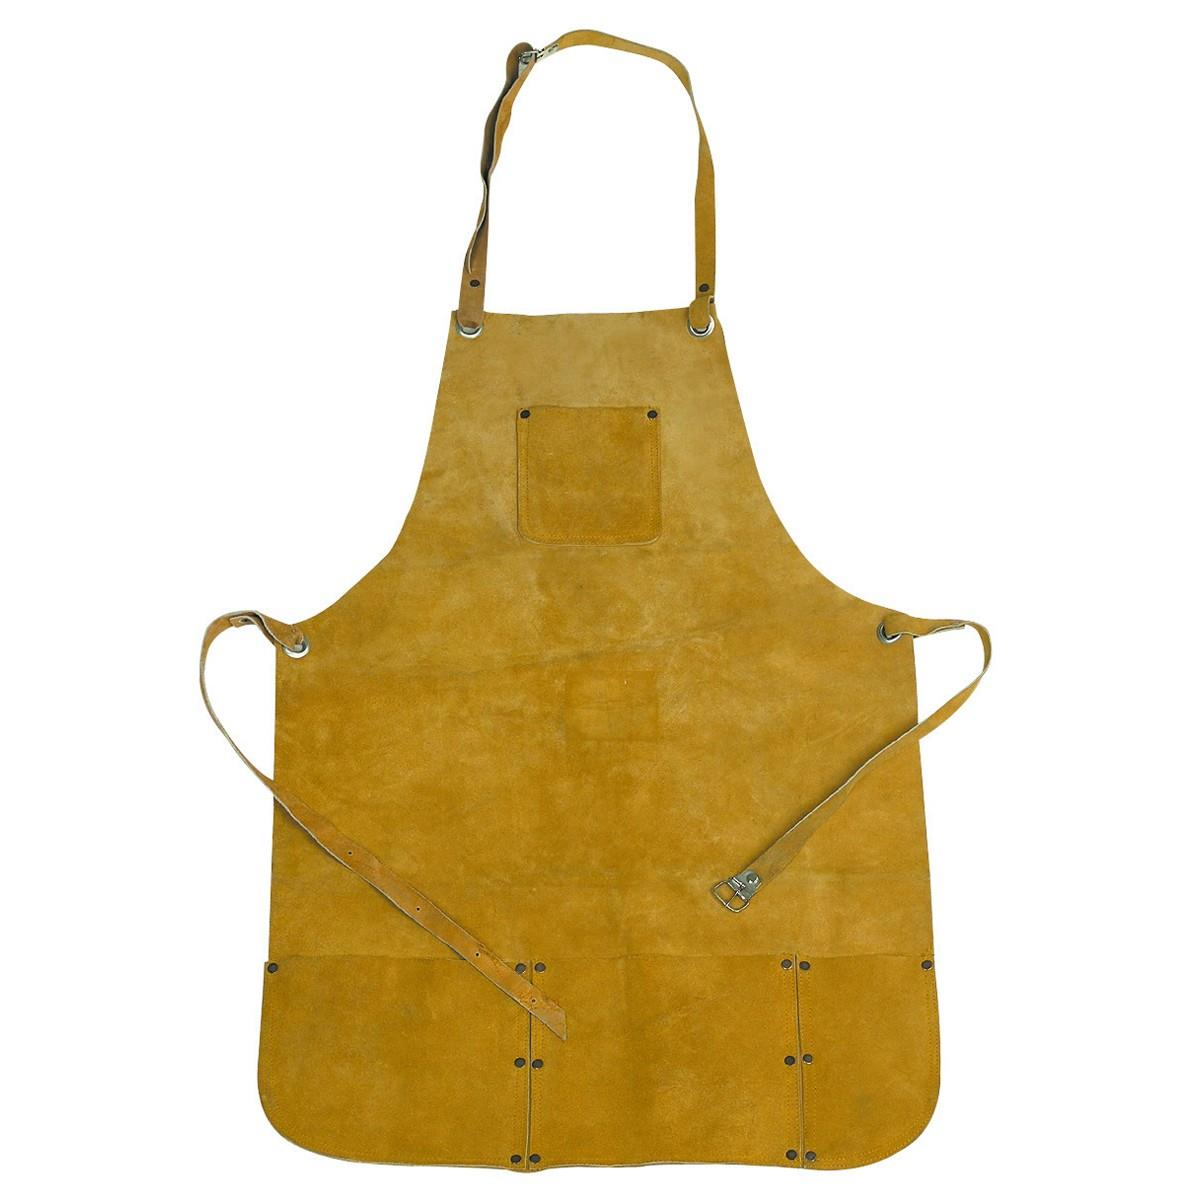 "Leather Apron 22"" X 32"" - 4 Pockets - Welding,Melting,Gold,Silver,Smelting"